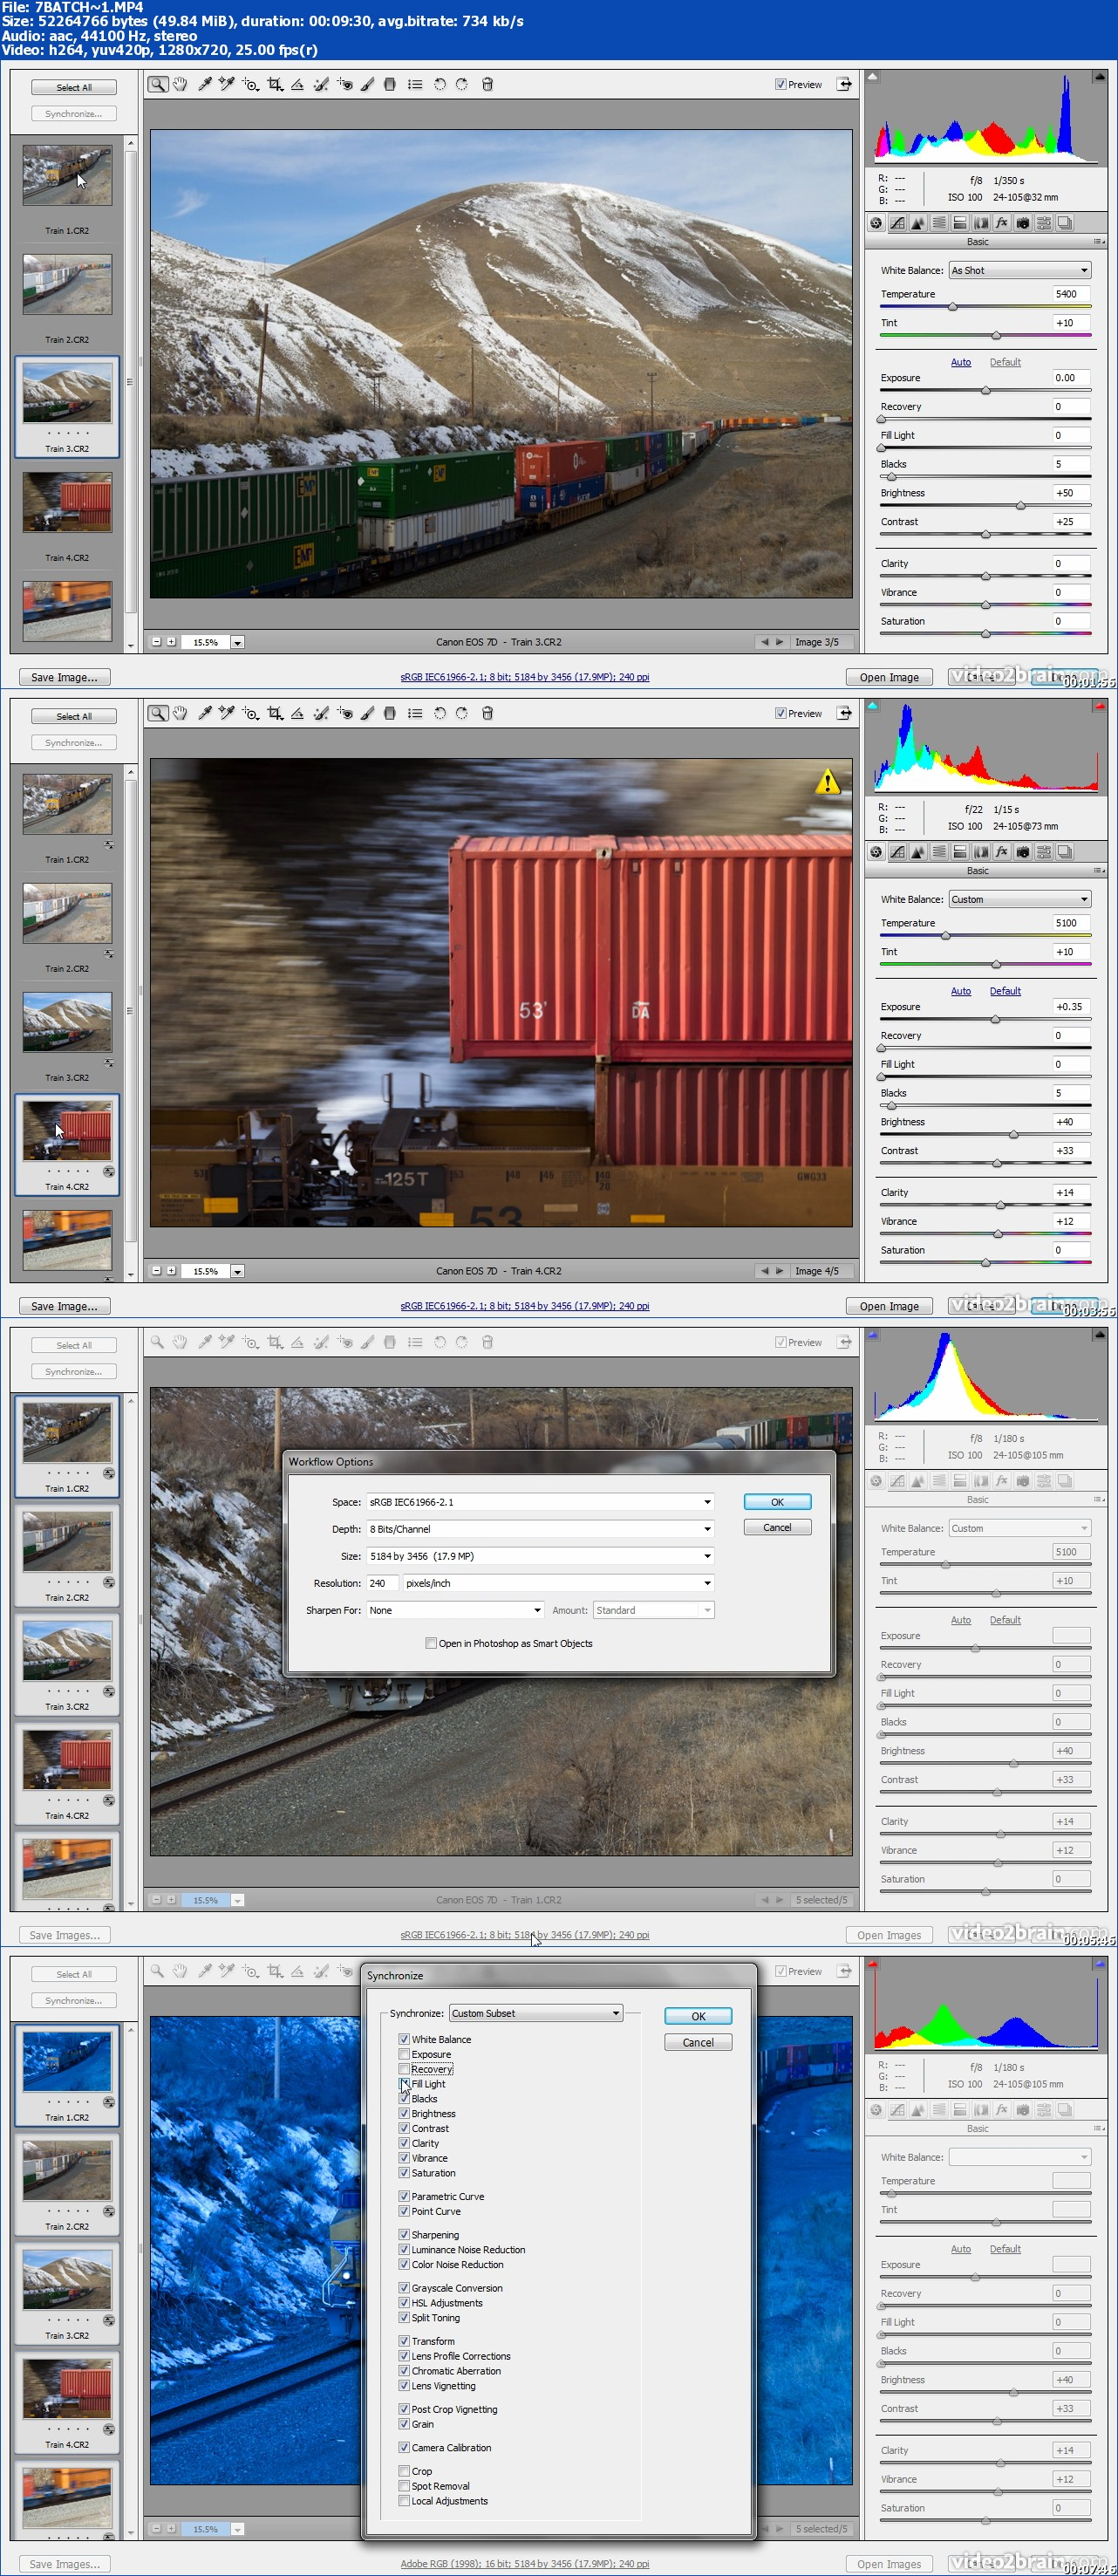 Peachpit Press - Automate Image Editing in Adobe Photoshop CS5 Learn by Video (Repost)